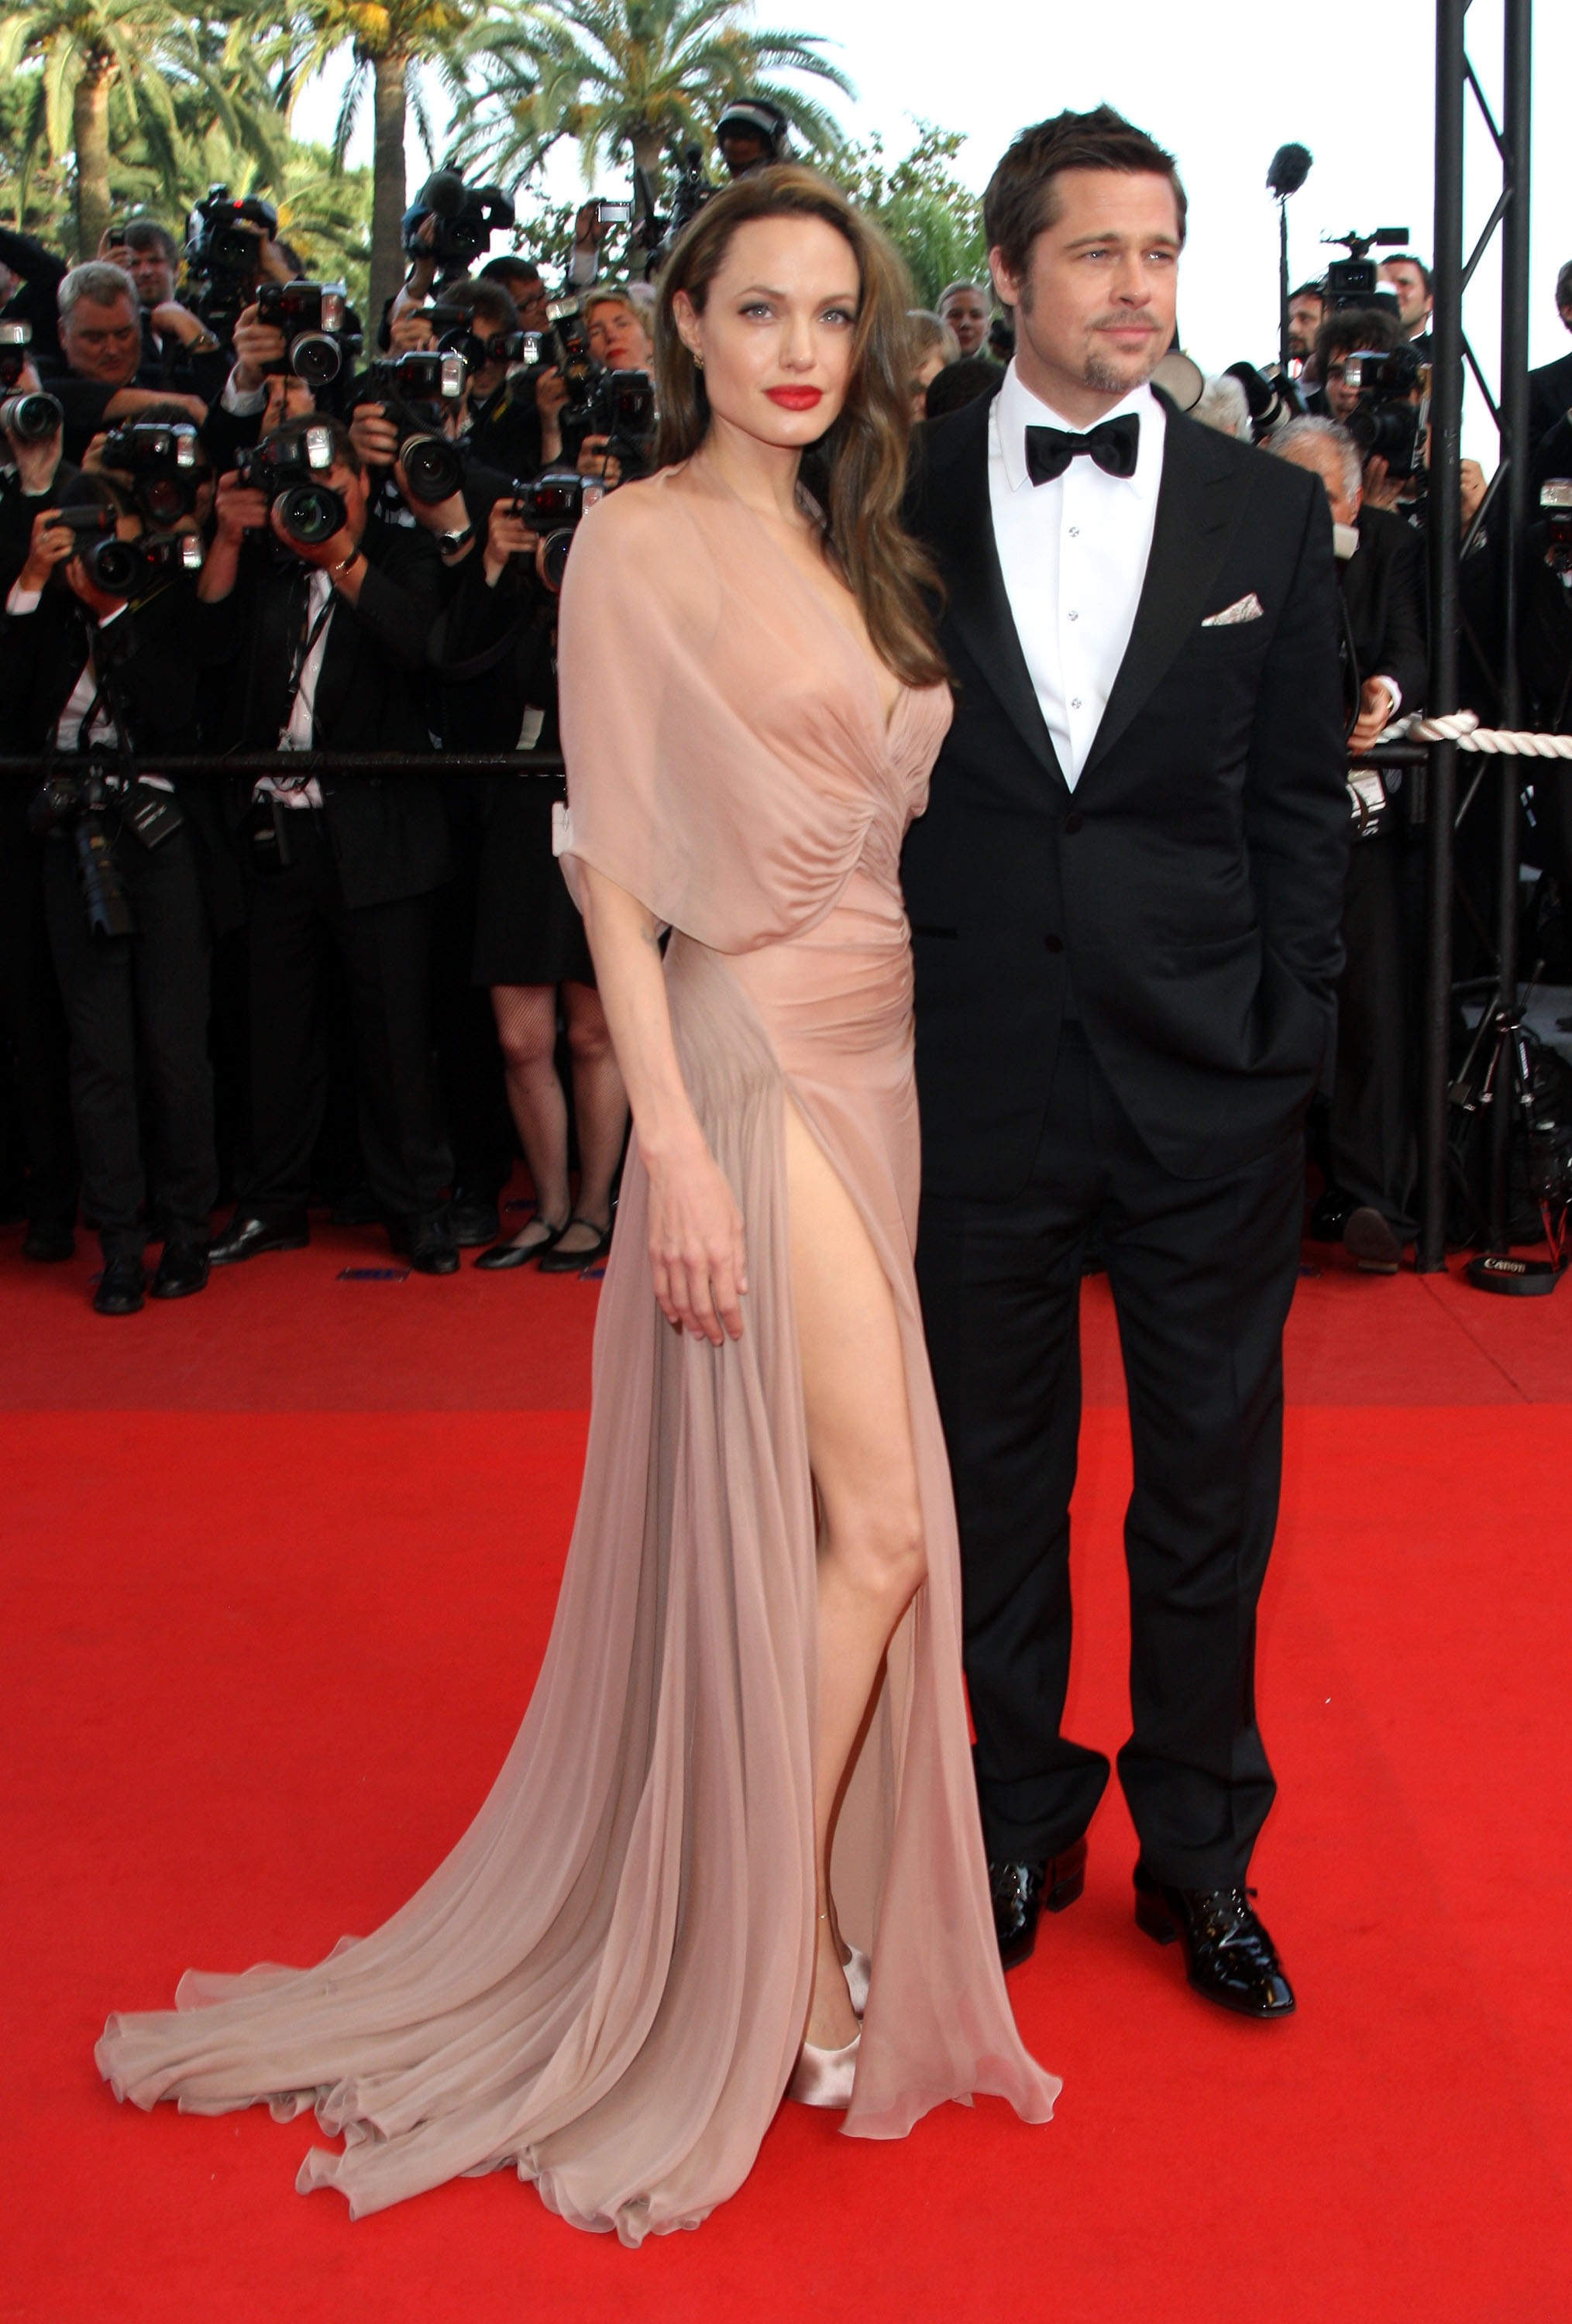 CANNES, FRANCE - MAY 20: Actors Angelina Jolie and Brad Pitt attend the 'Inglourious Basterds' Premiere at the Grand Theatre Lumiere during the 62nd Annual Cannes Film Festival on May 20, 2009 in Cannes, France. (Photo by Jeff Vespa/WireImage)